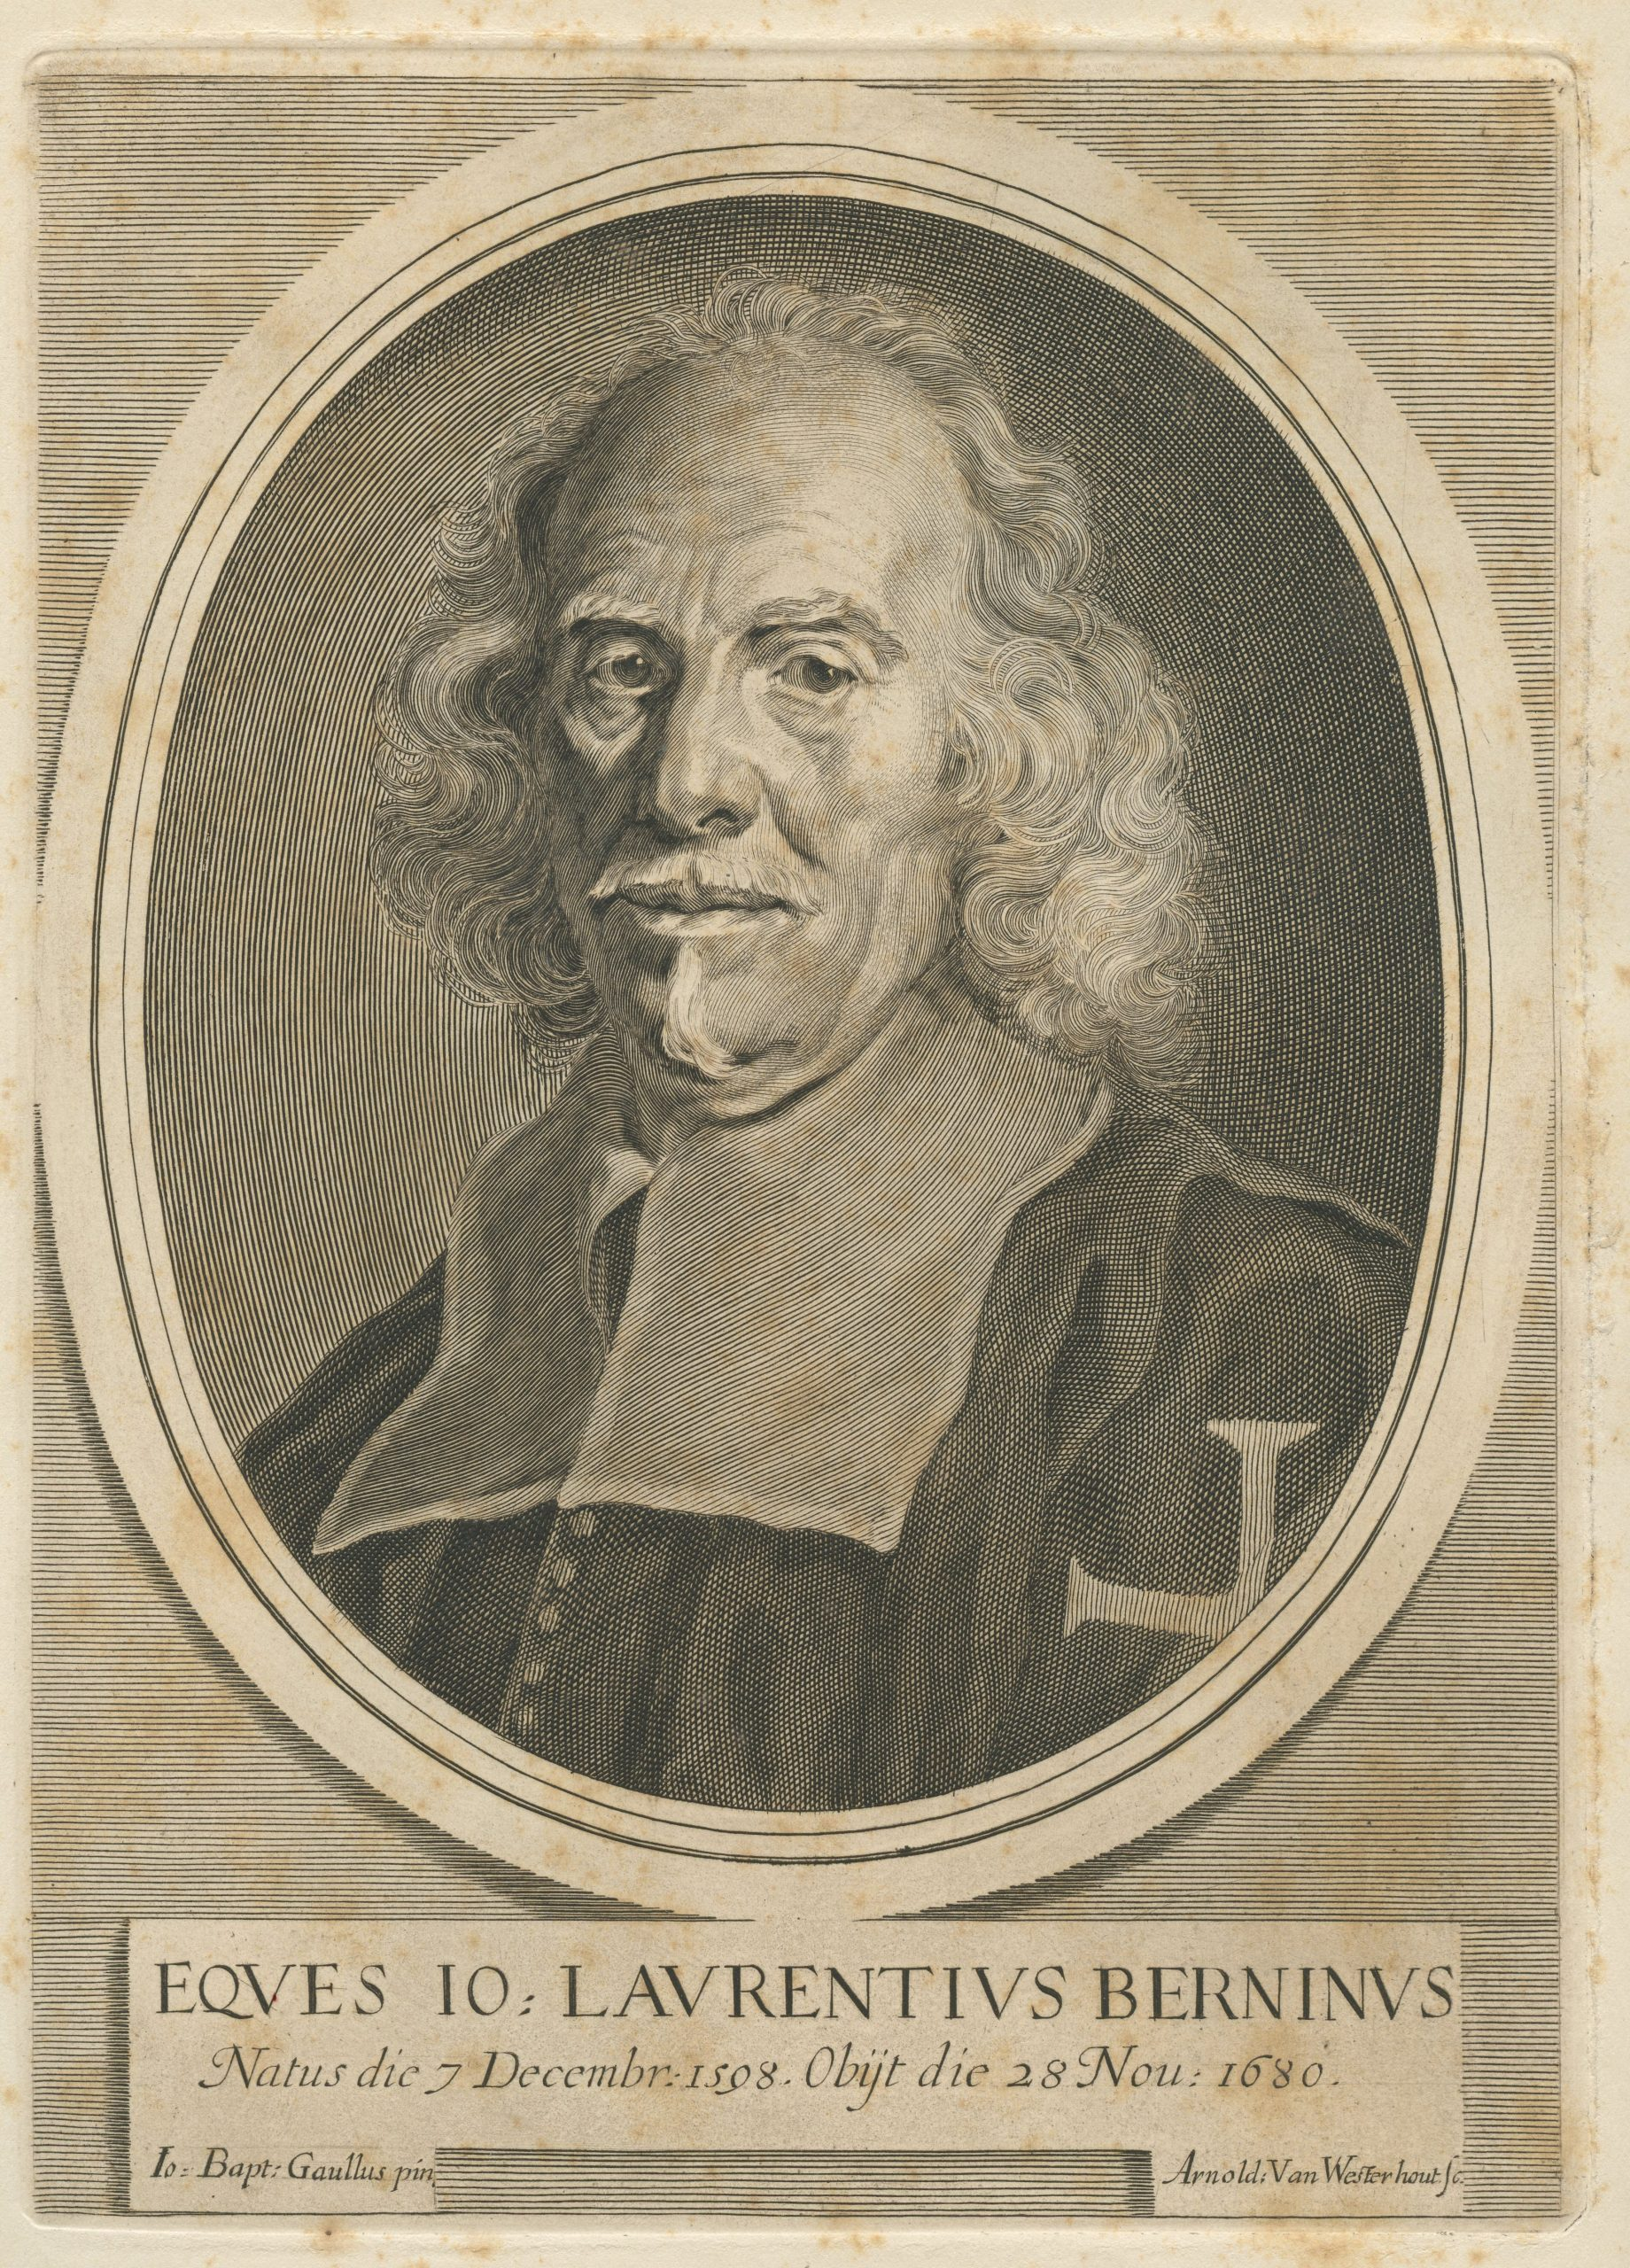 A old man, with a receding hairline and long hair.